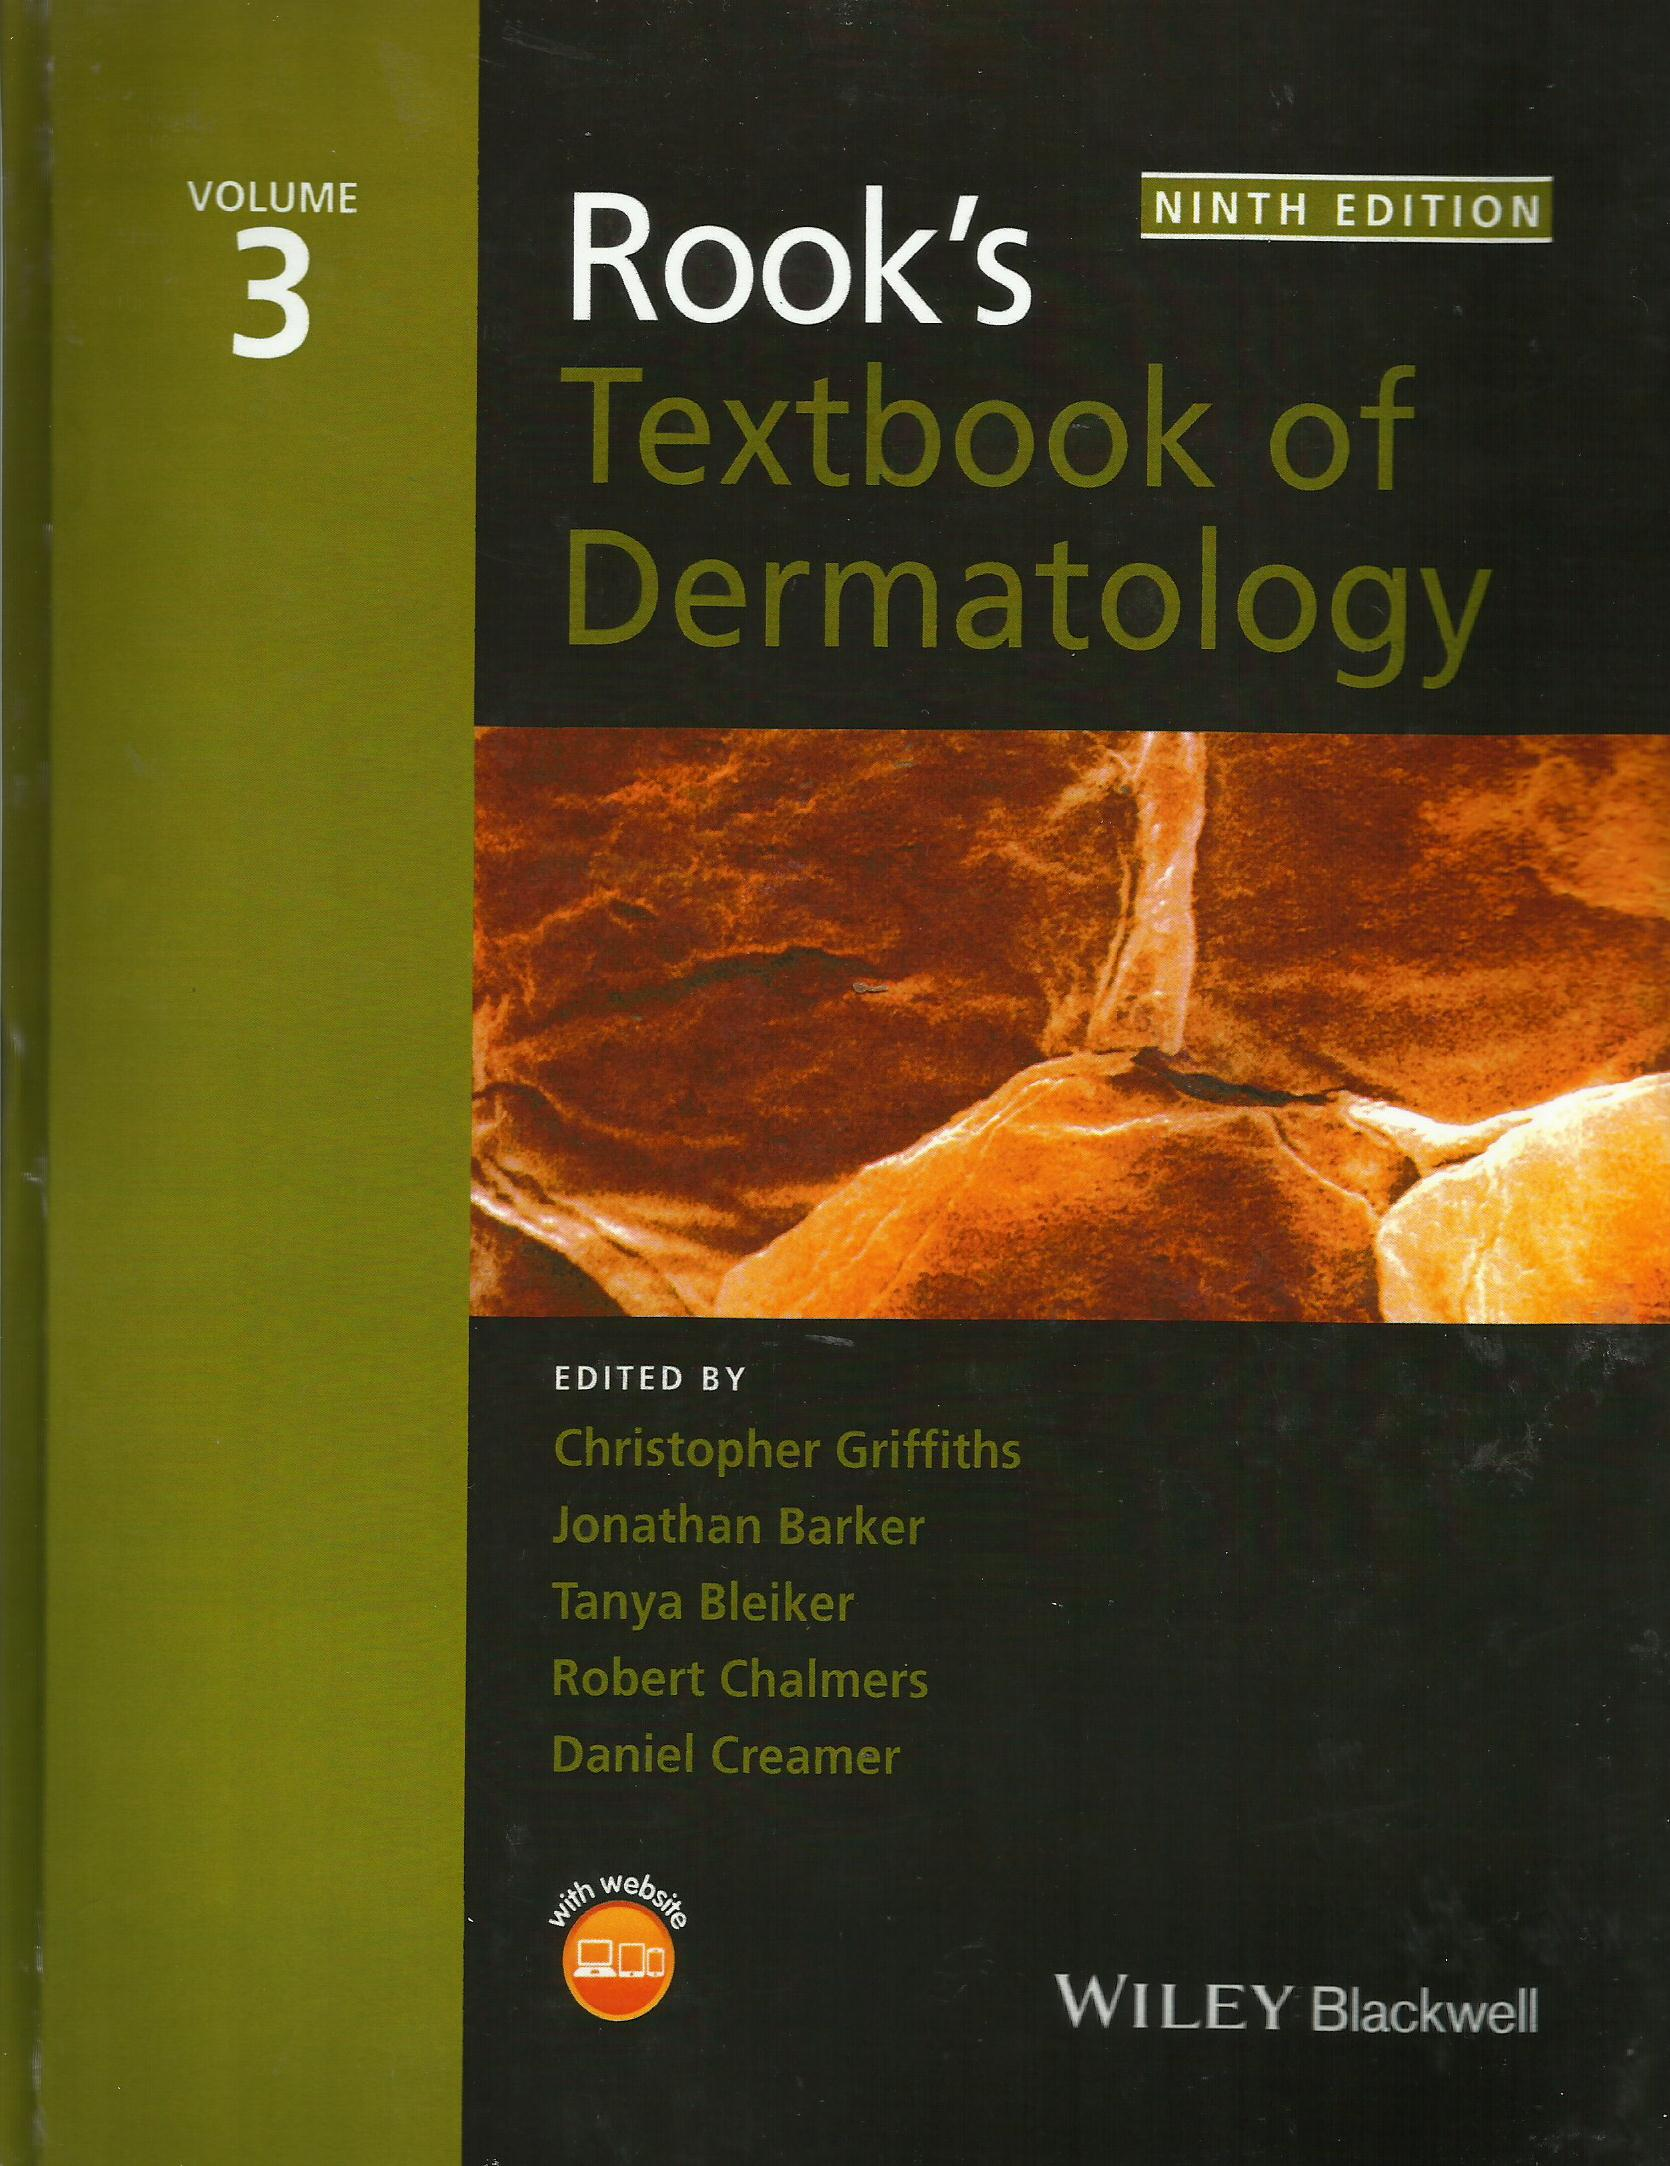 Rook's Textbook of Dermatology vol.3